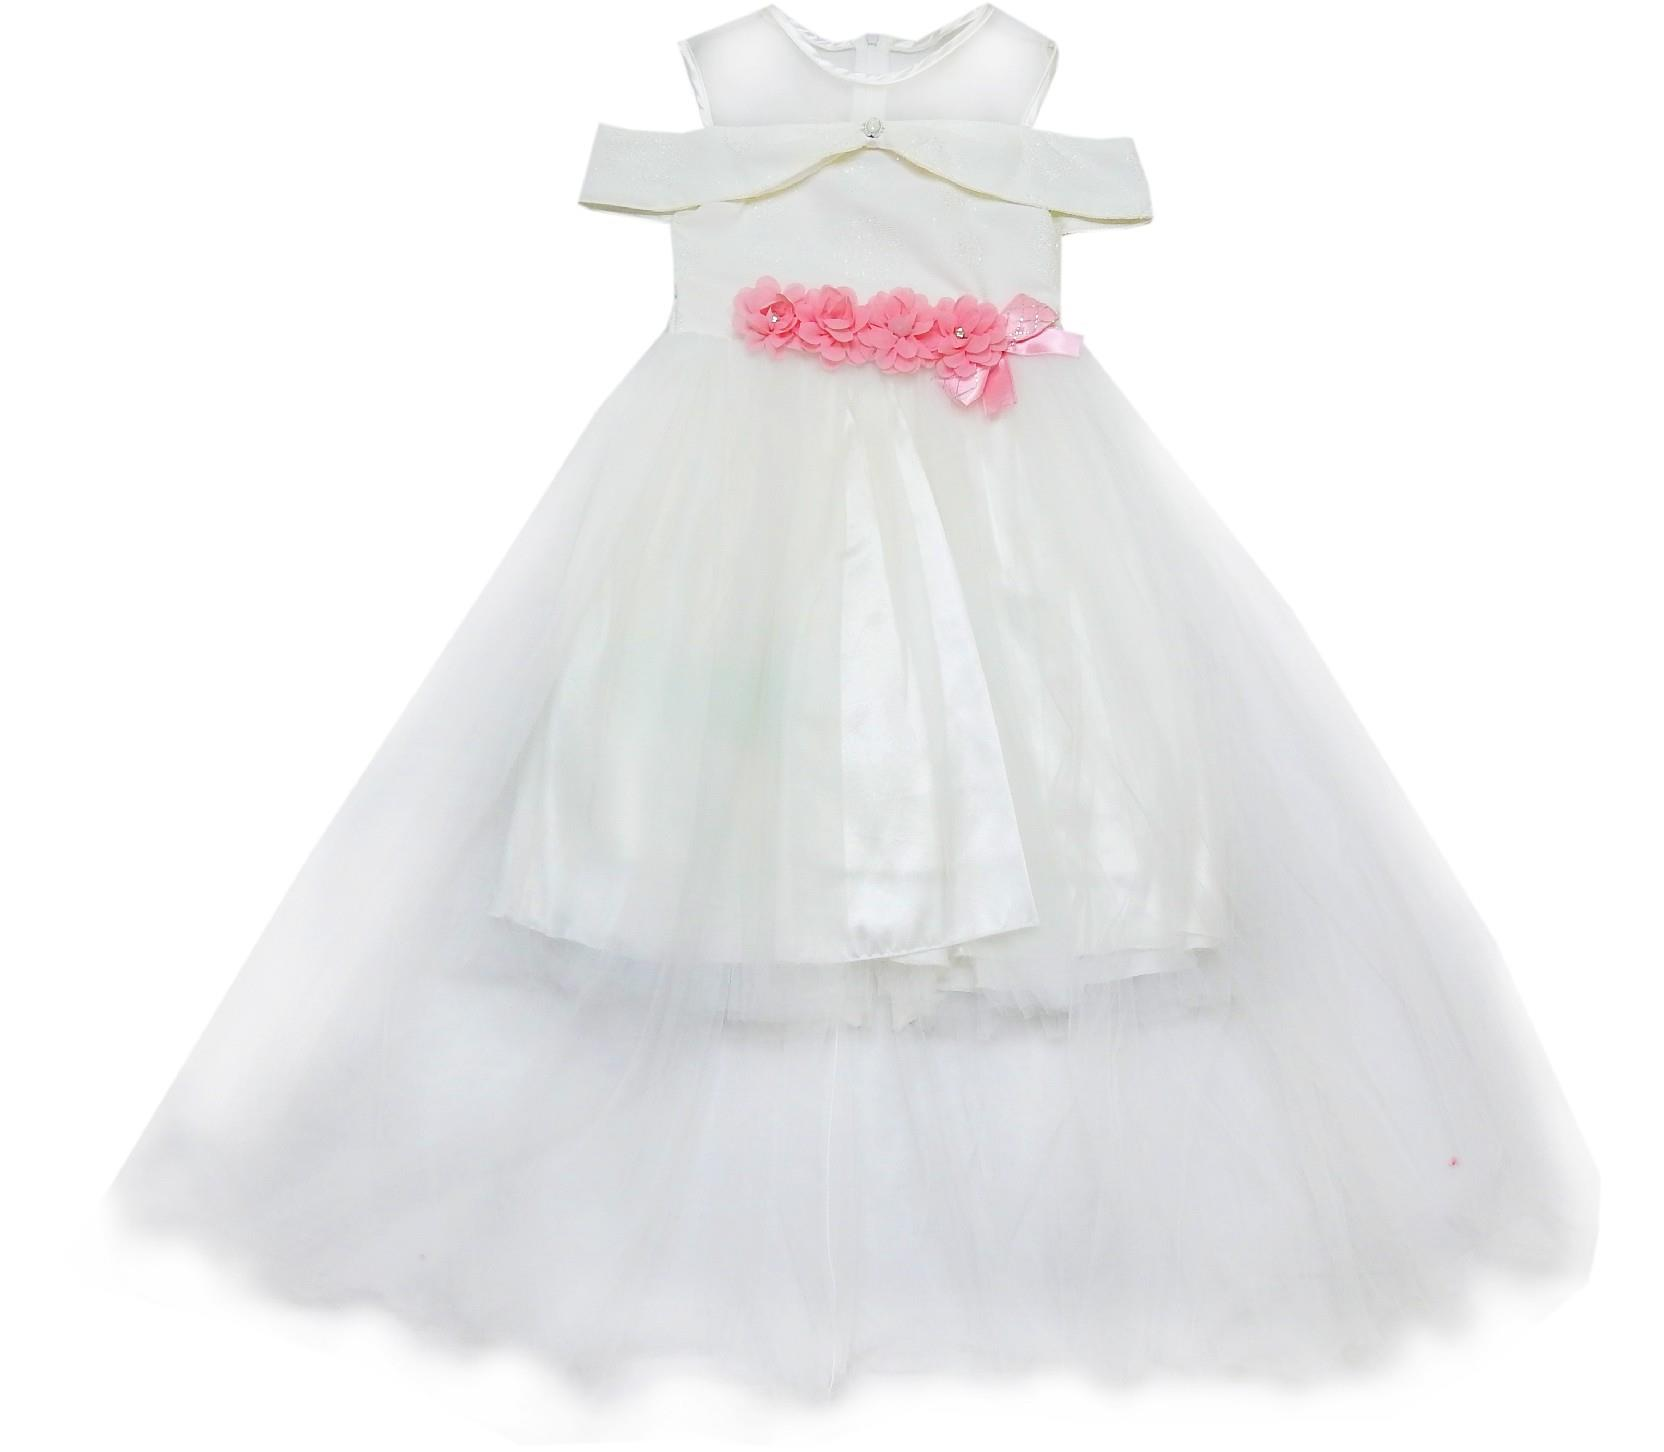 305 wholesale tulle dress for girl (9-10-11-12 age)